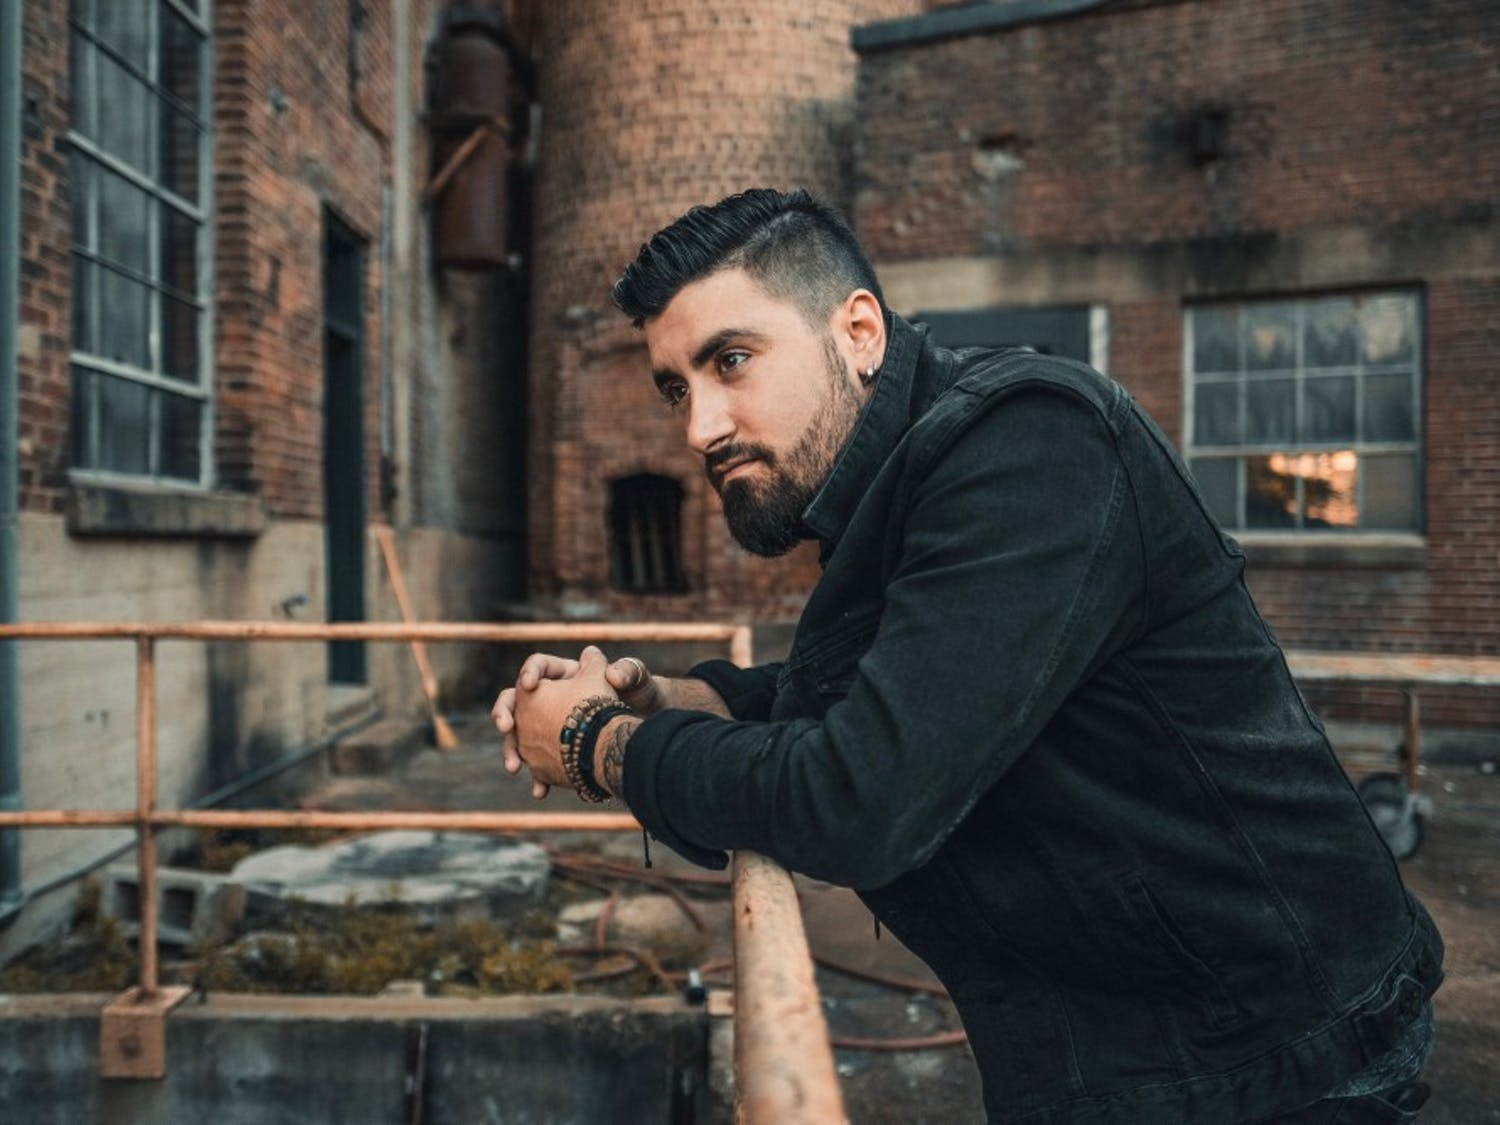 Country singer Eric Van Houten grew up in Buffalo with no initial plan to move to Nashville.